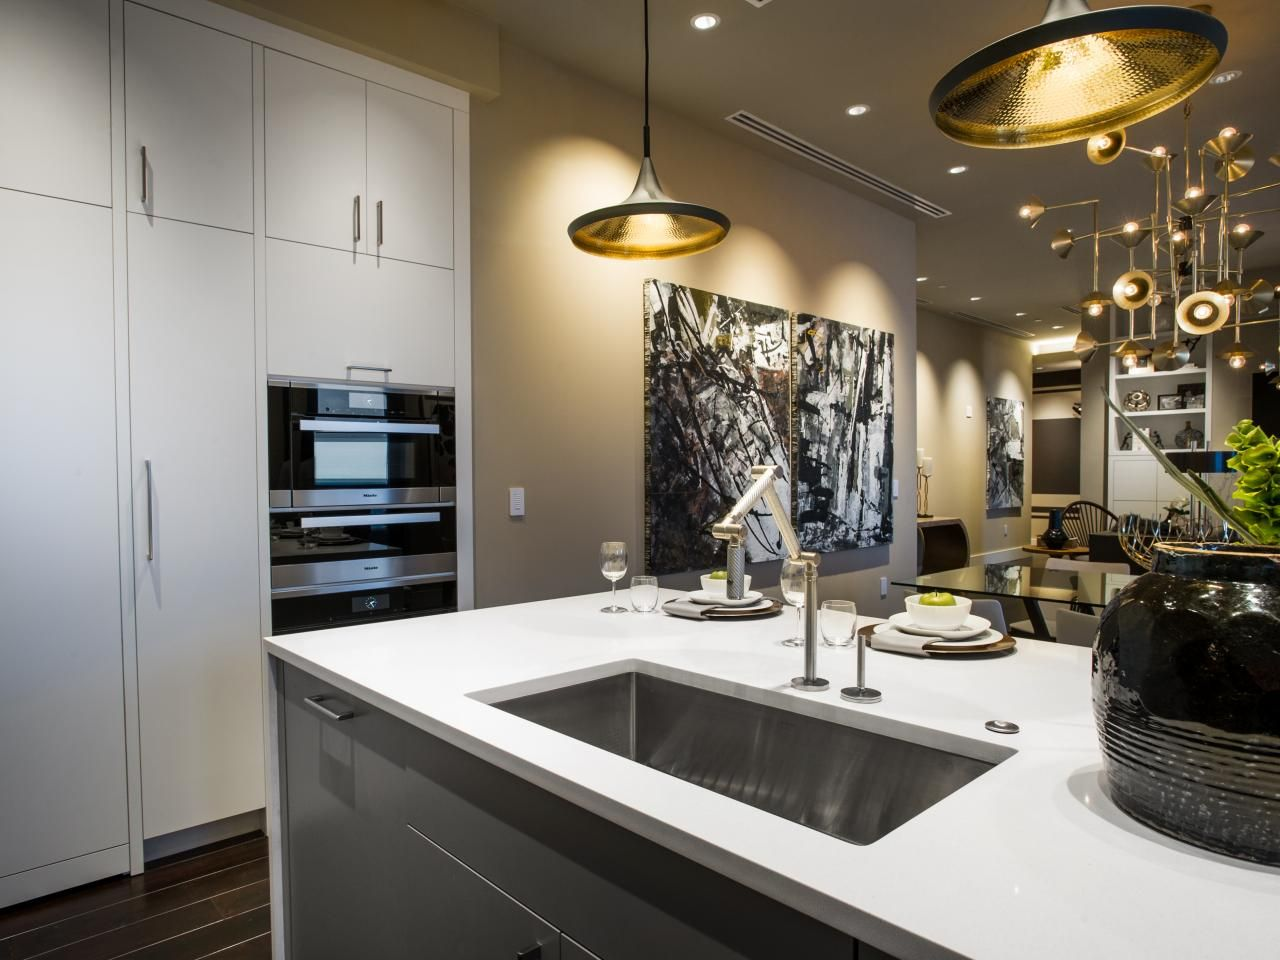 Luxury Kitchen Designs 2014 kitchen pictures from hgtv urban oasis 2014 | hgtv, kitchen